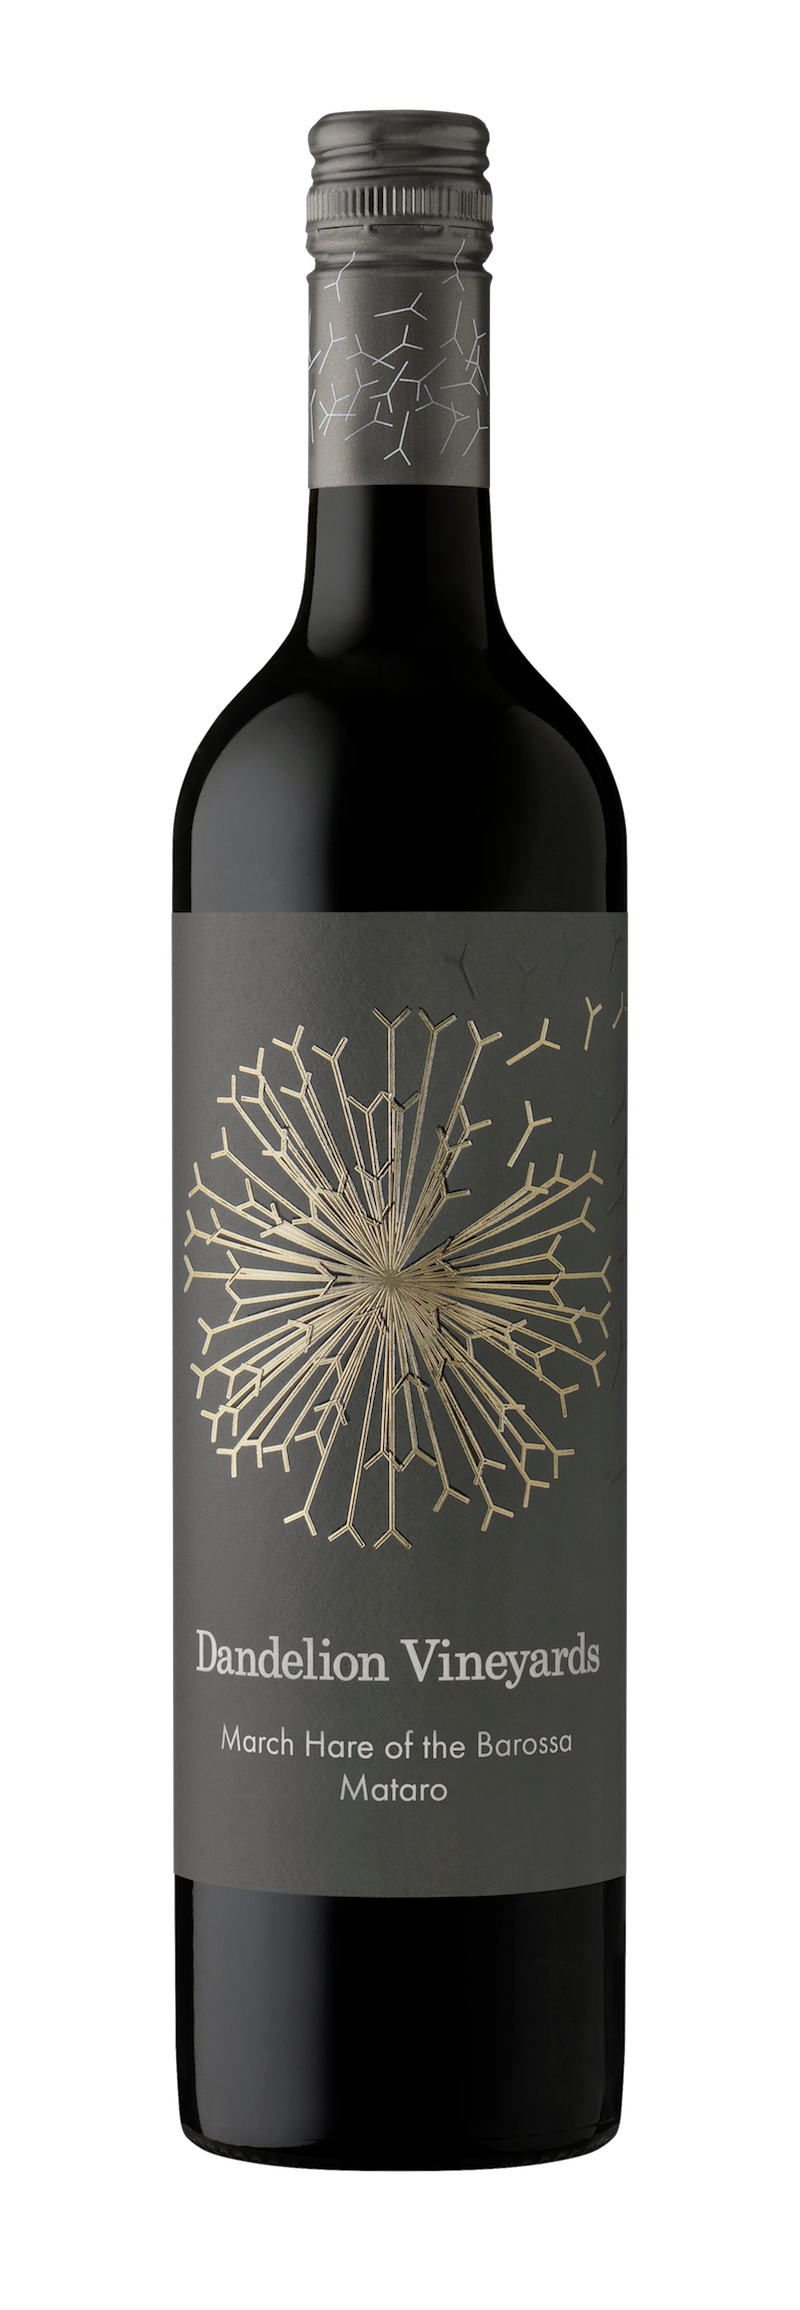 2018 Dandelion Vineyards Mataro - March Hare of the Barossa